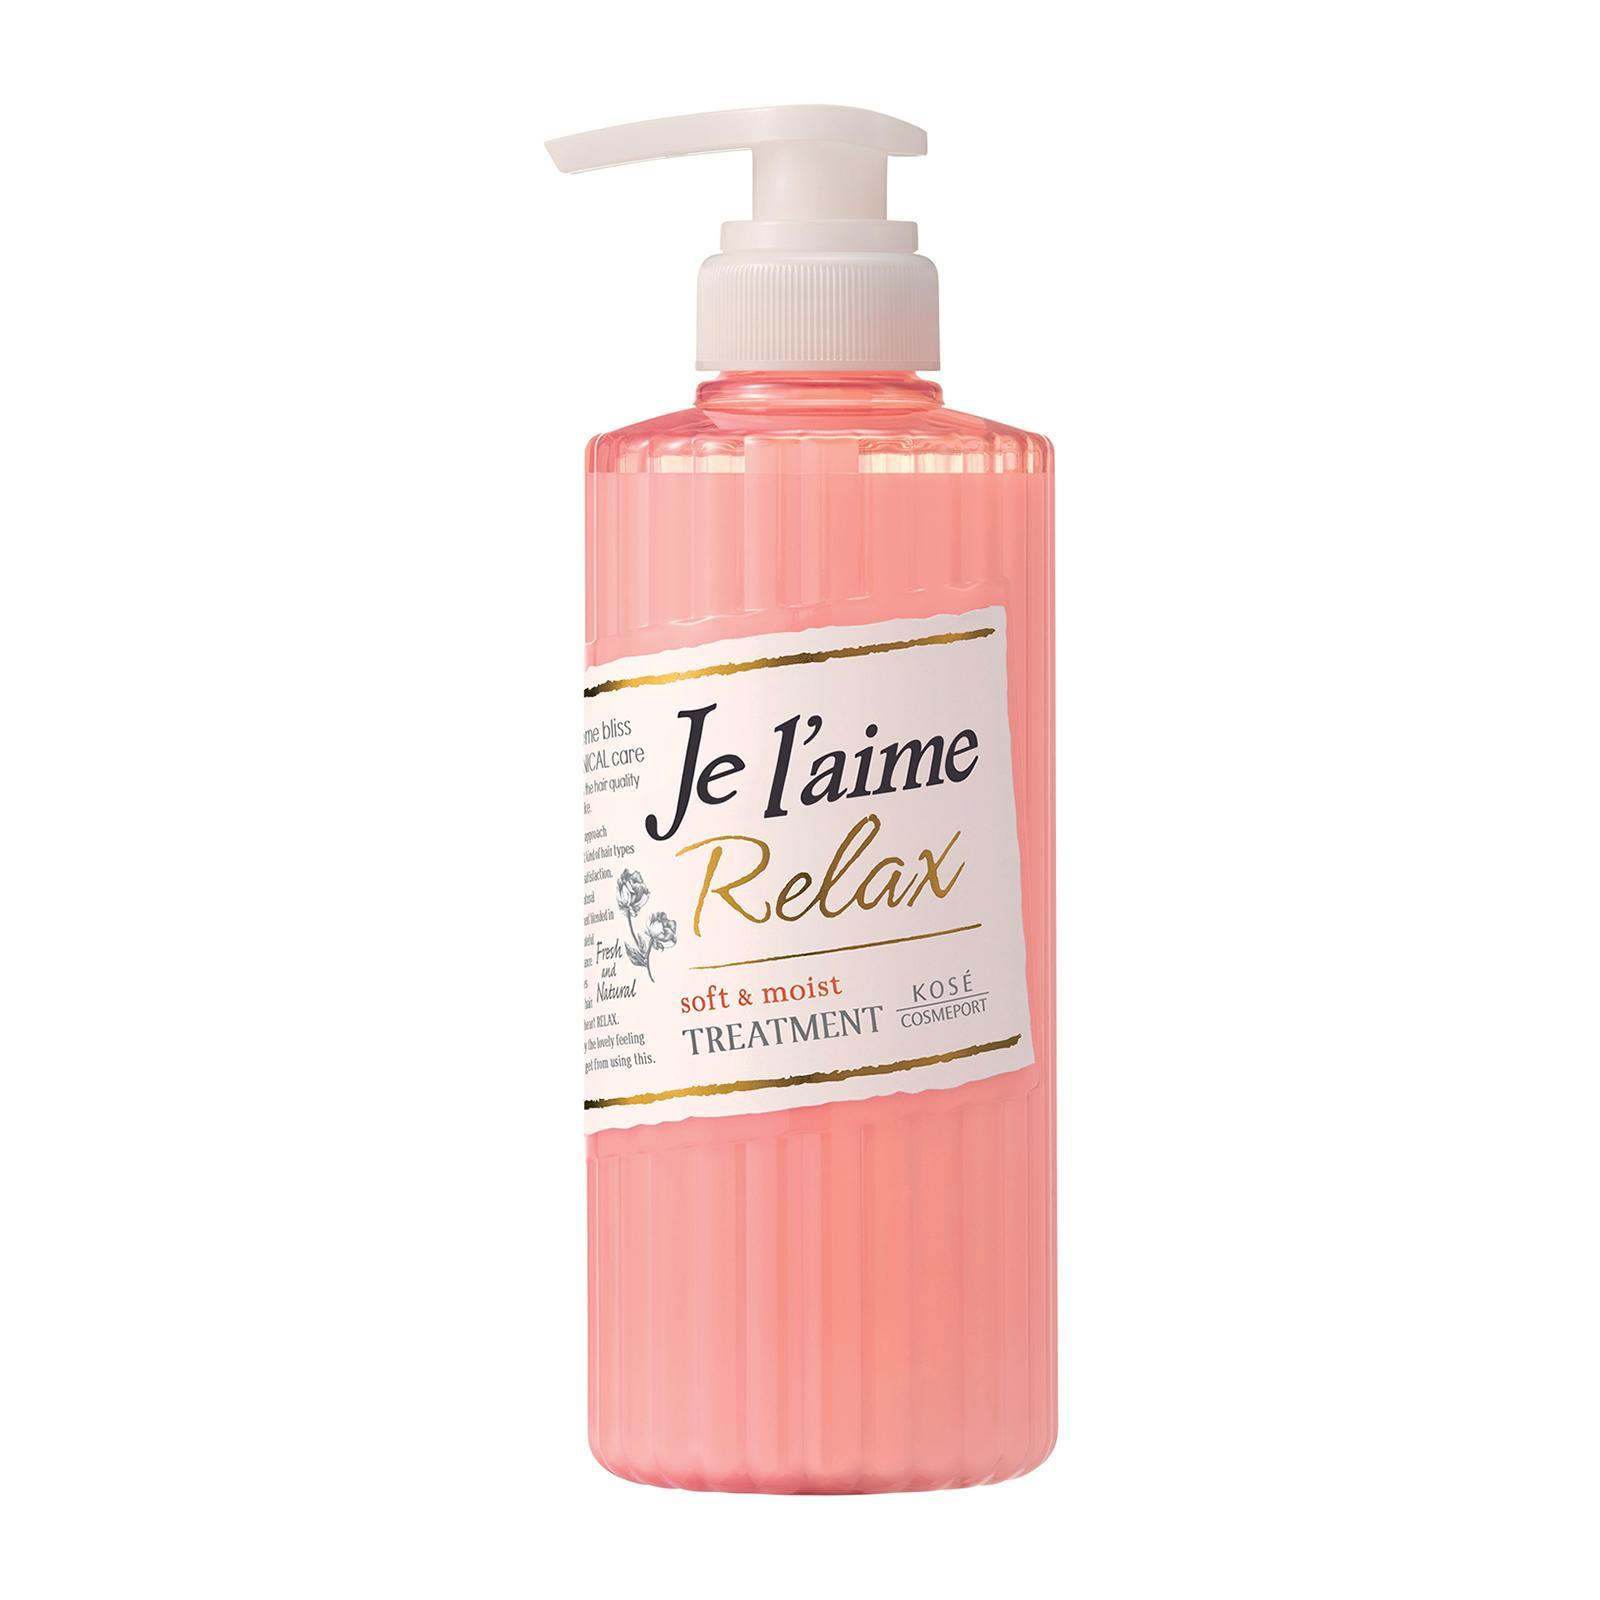 Kose Cosmeport Je L'aime Relax Treatment Soft and Moist